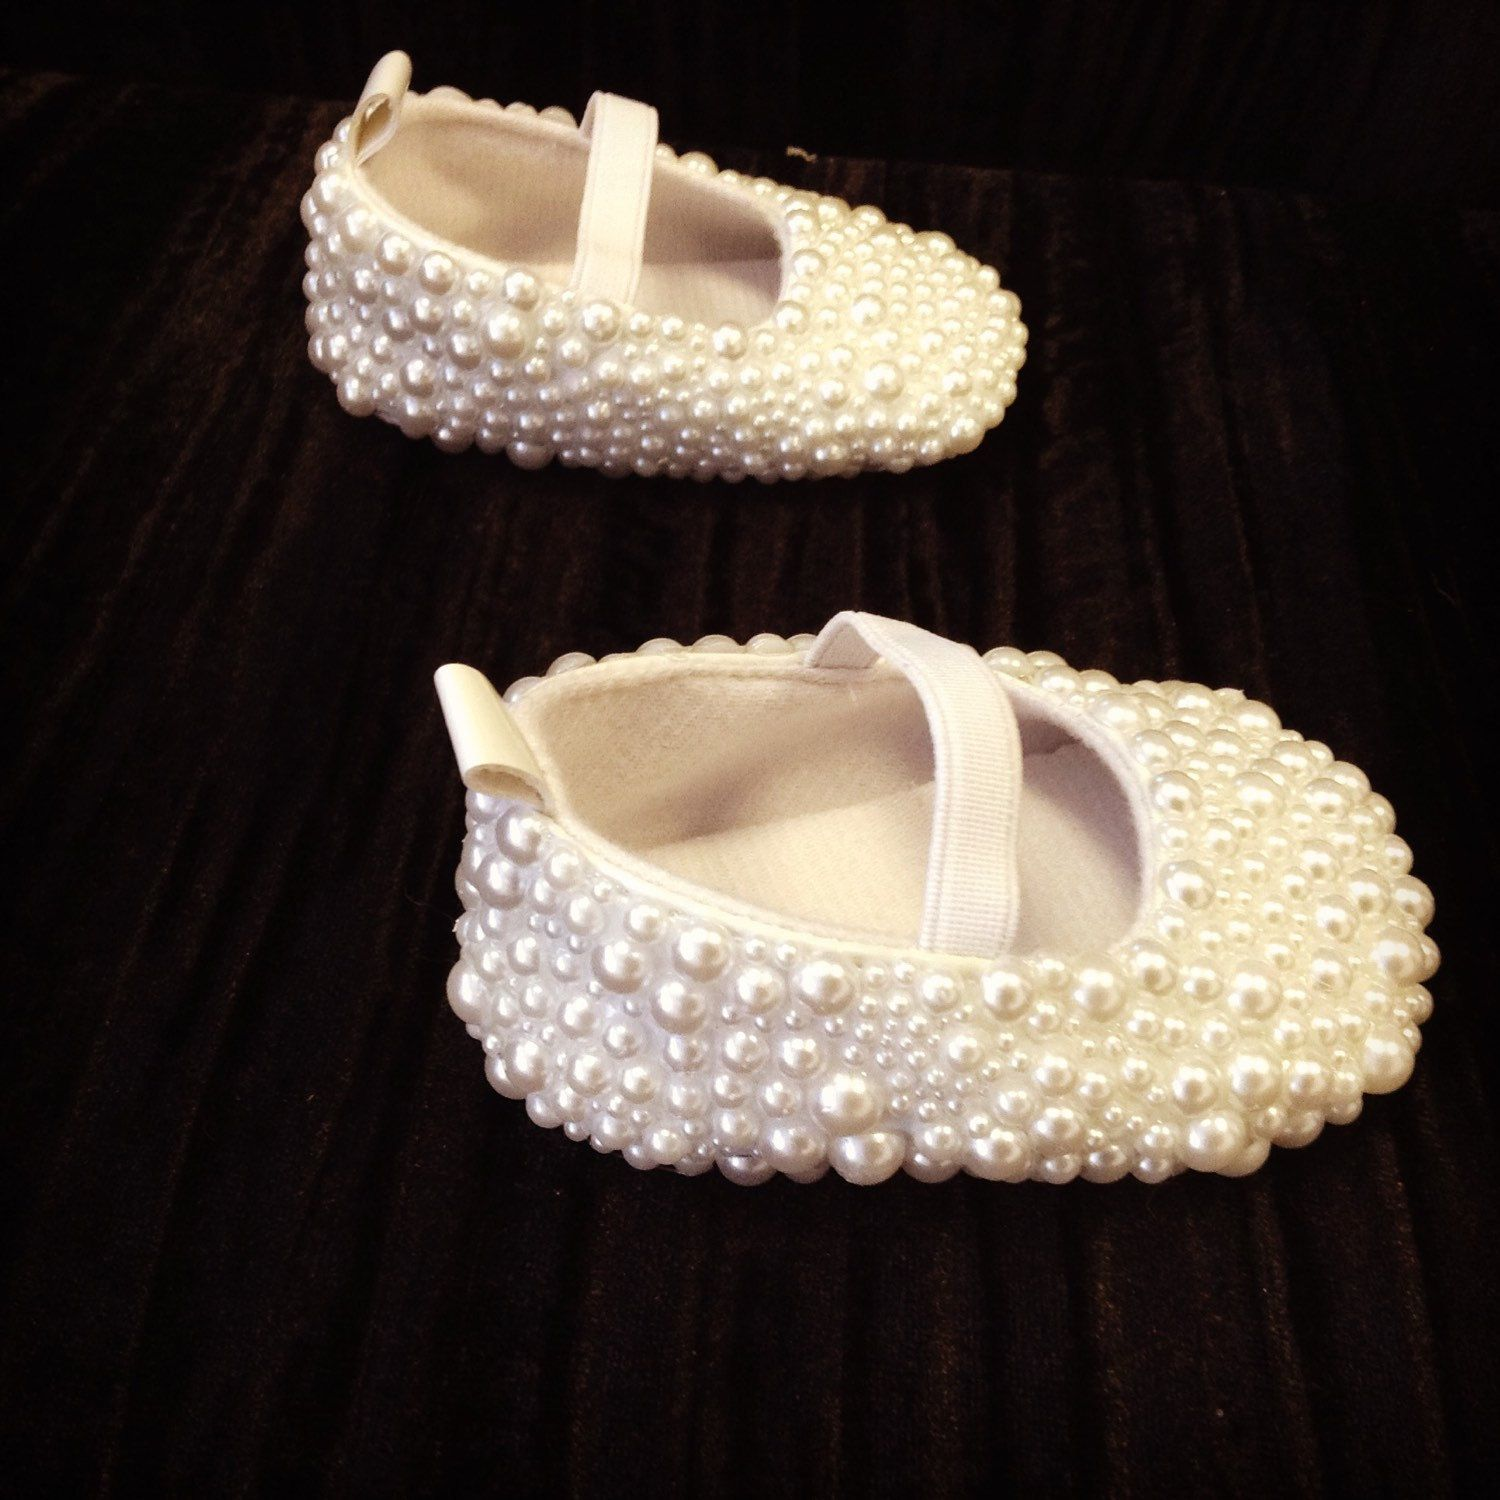 Hand pearled pram shoes romany blinged baby shoes flower girl